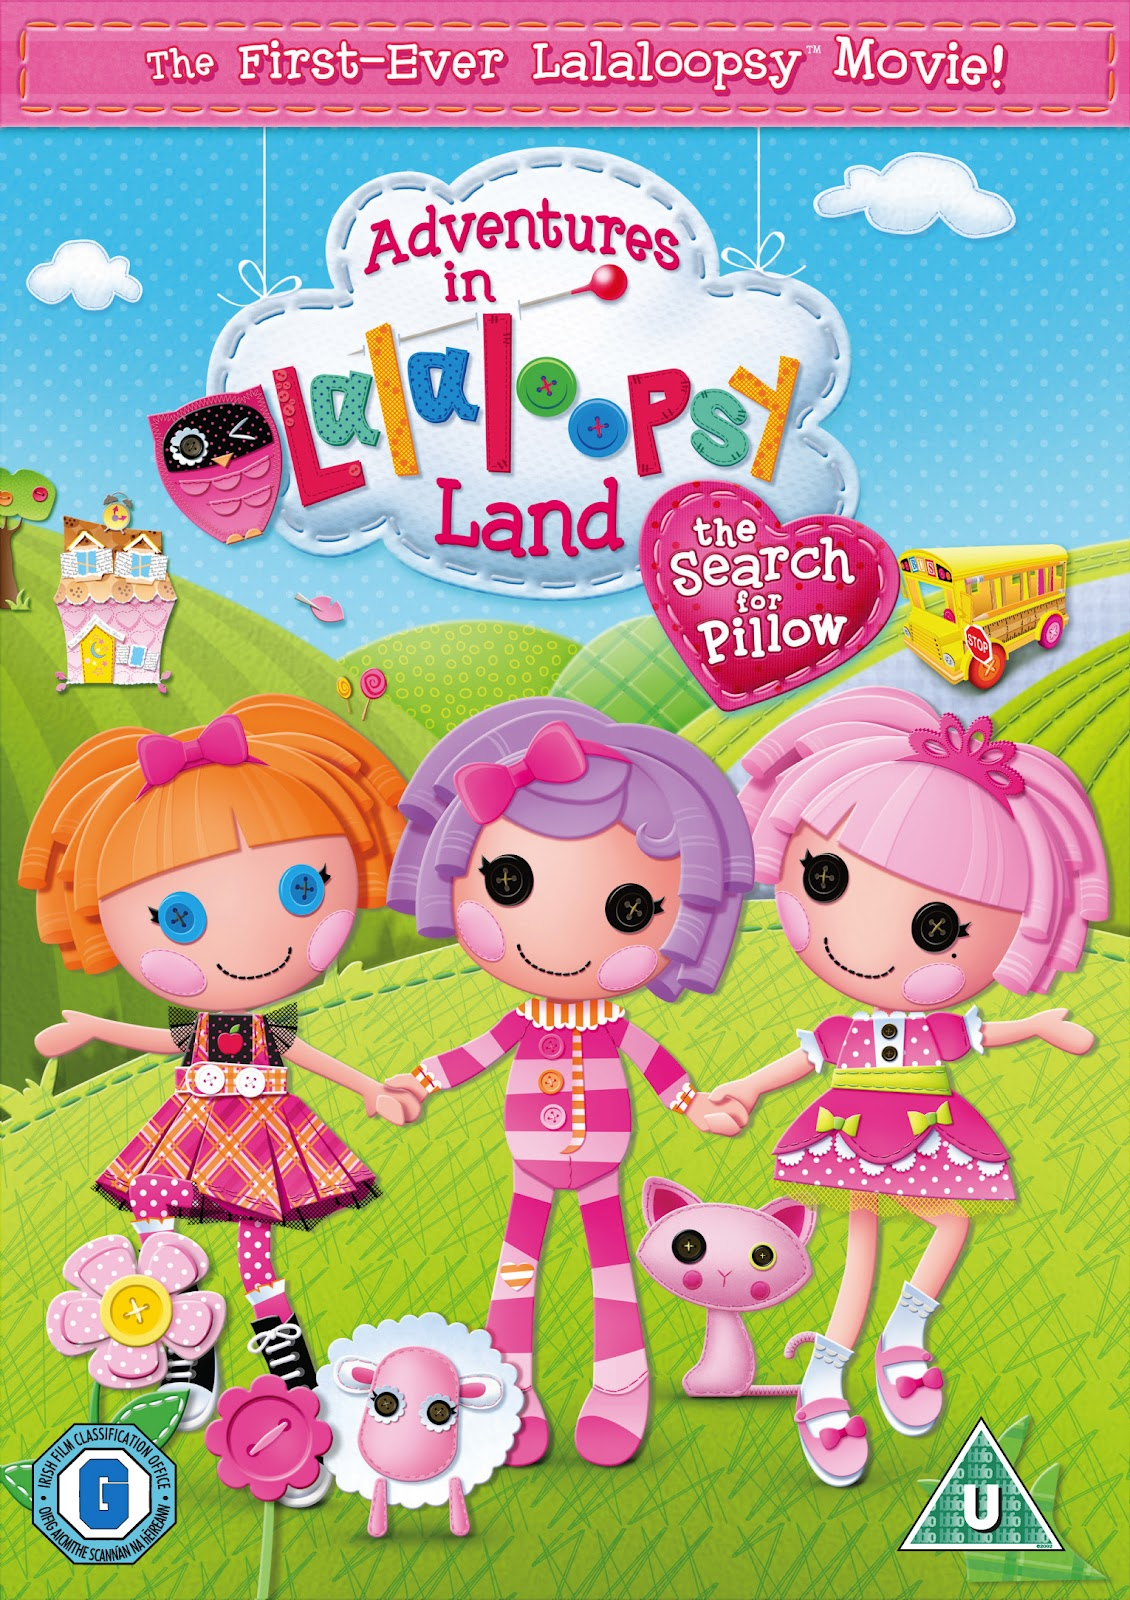 Fonts used in Lalaloopsy